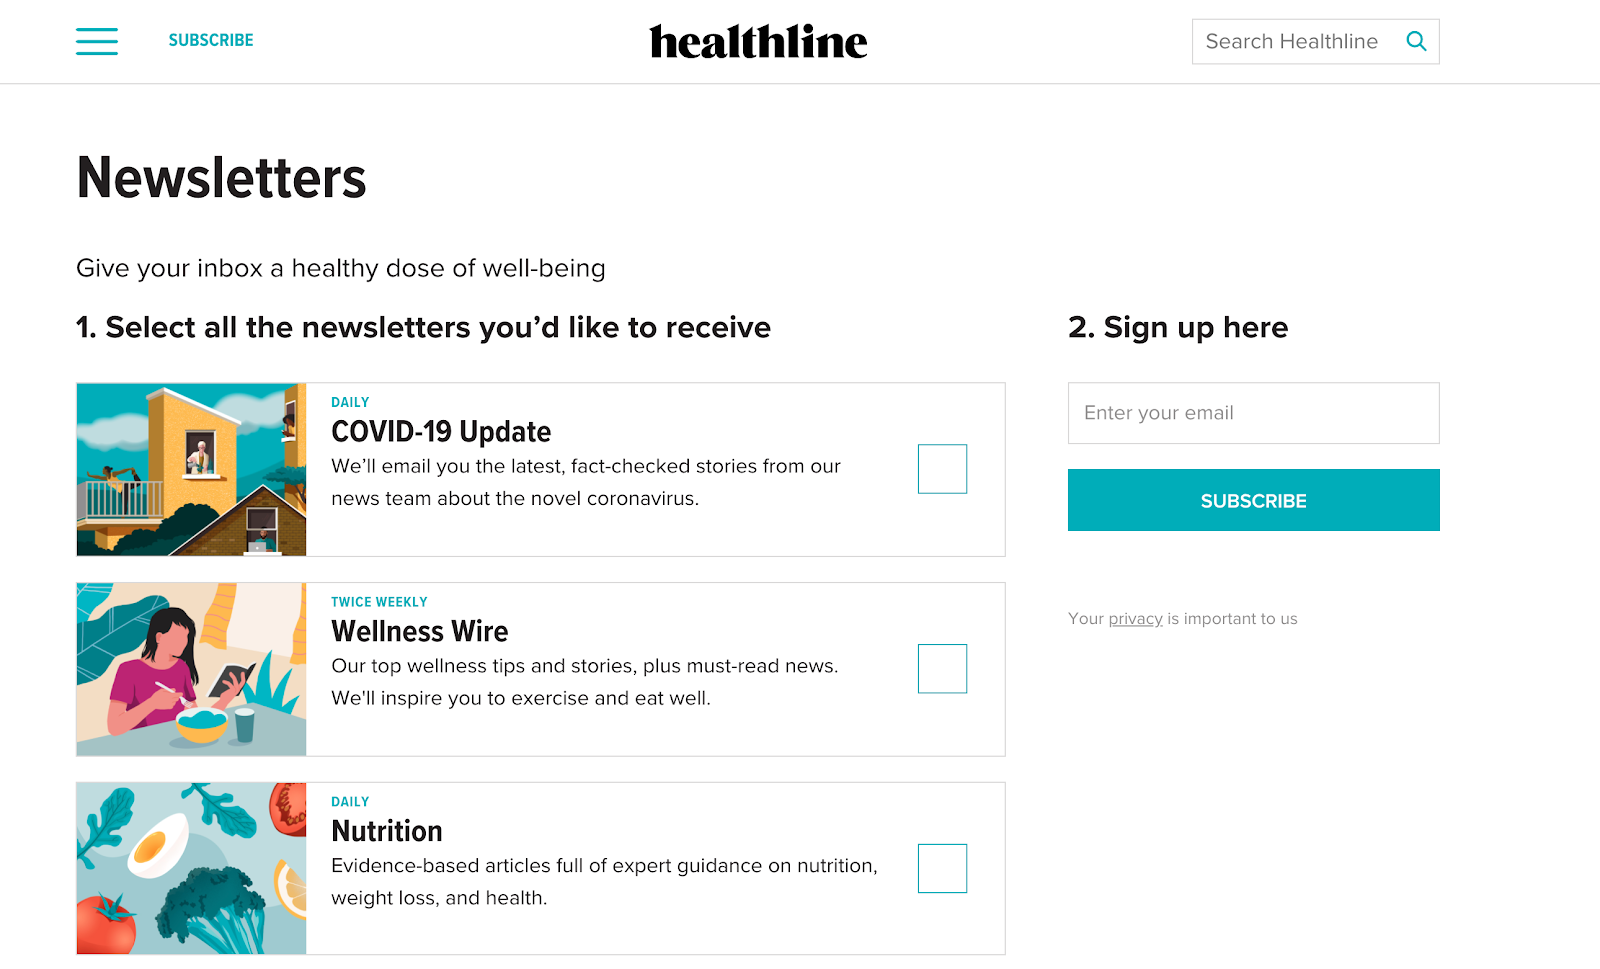 Example of free newsletter sign up form from Healthline website